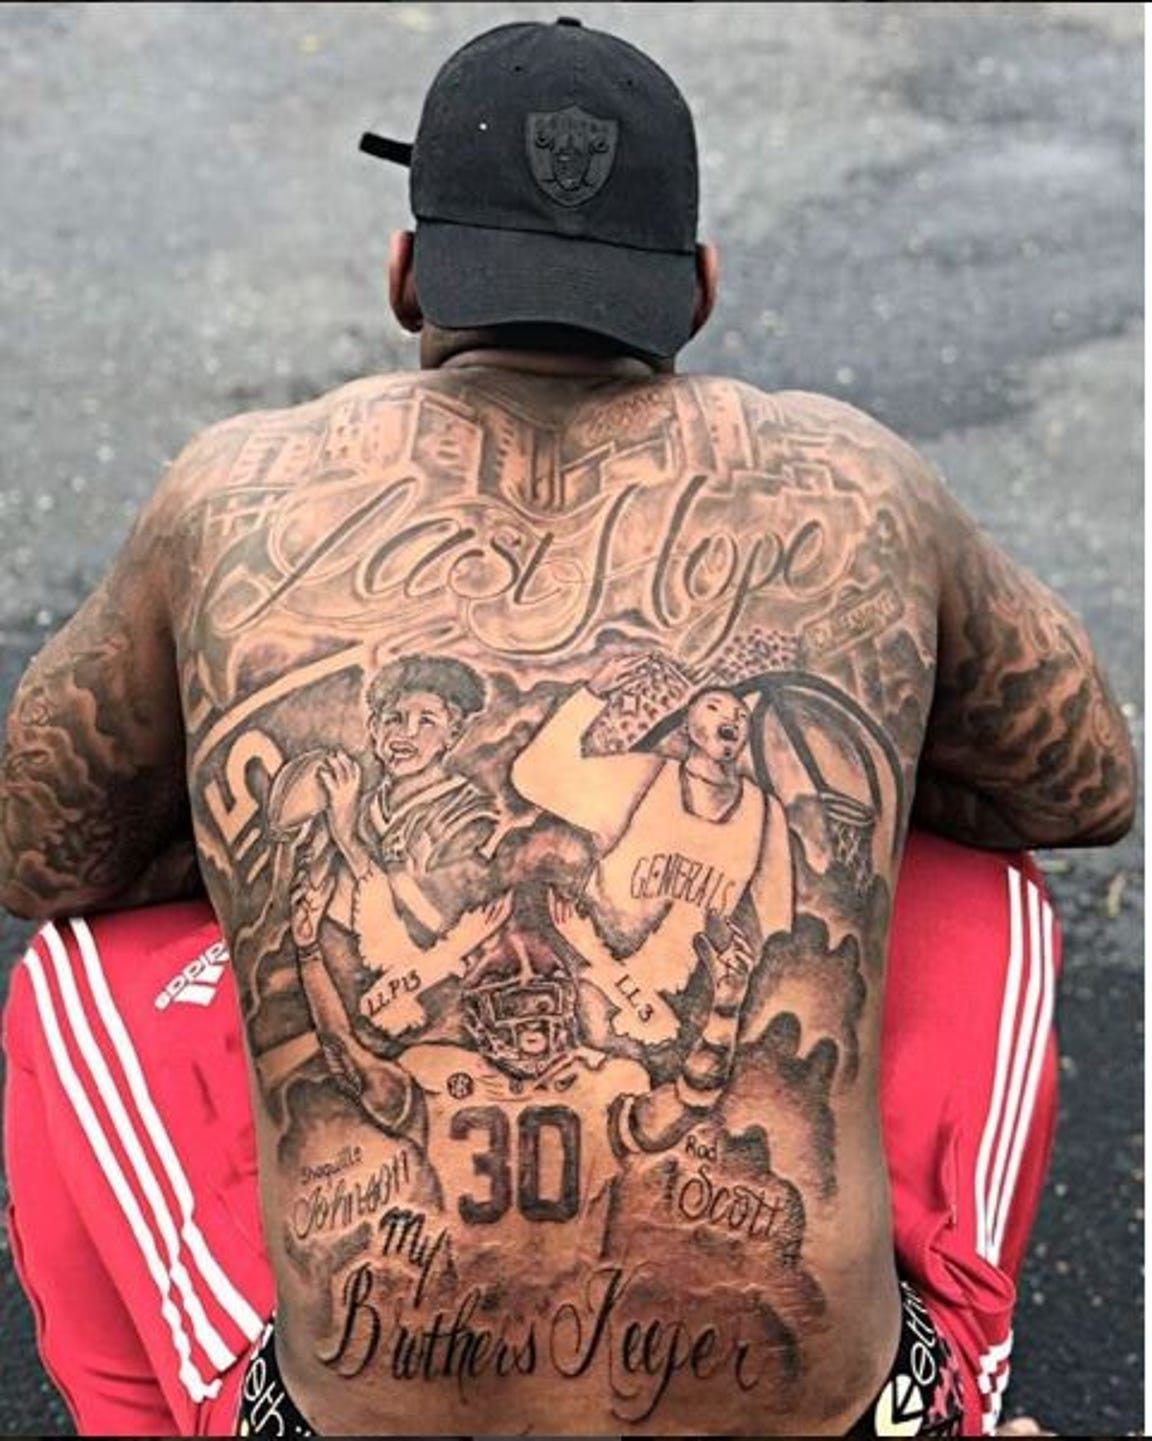 Tattoo artist Michael Jordan drew the tattoos on Mack Wilson's back in tribute to fallen loved ones Rod Scott and Shaquille Johnson.